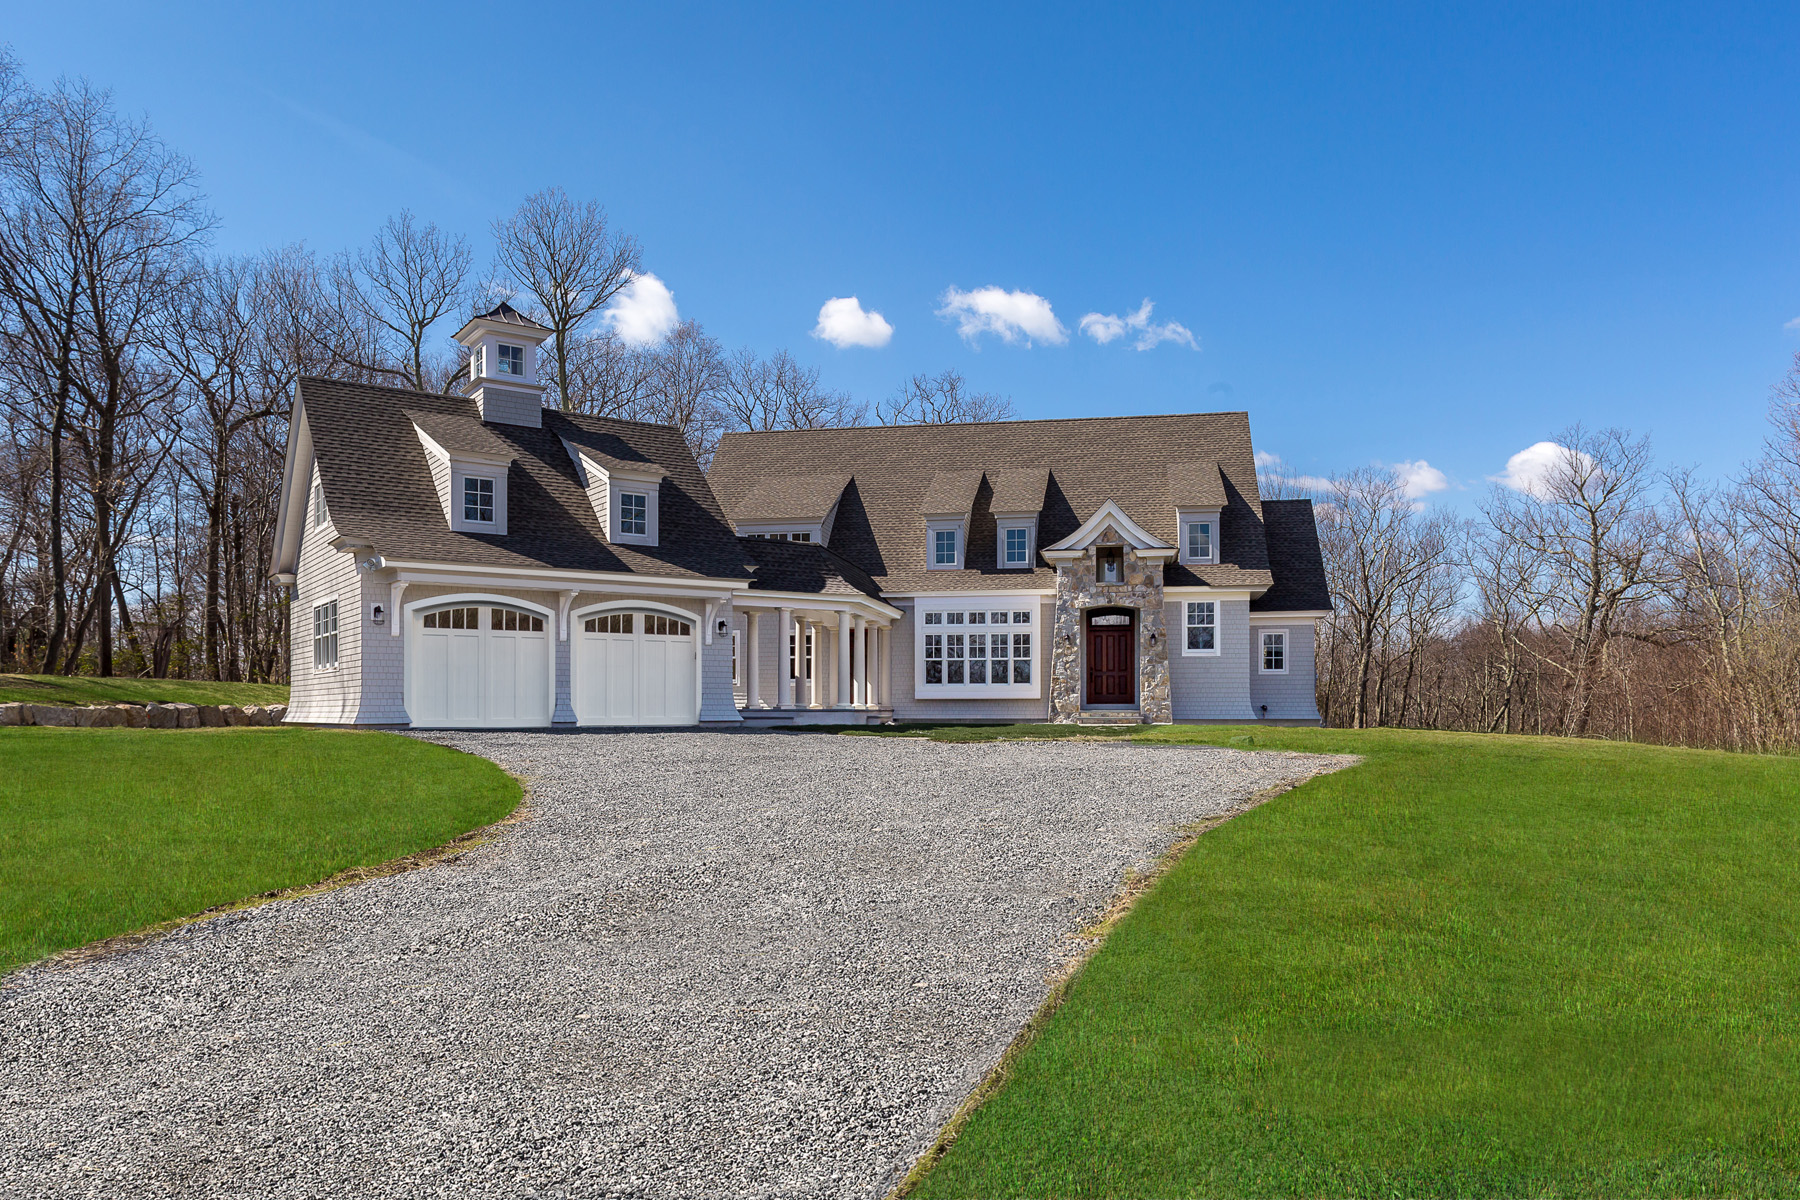 Single Family Home for Sale at New Construction 11 Hillcrest Lane Weston, Connecticut 06883 United States